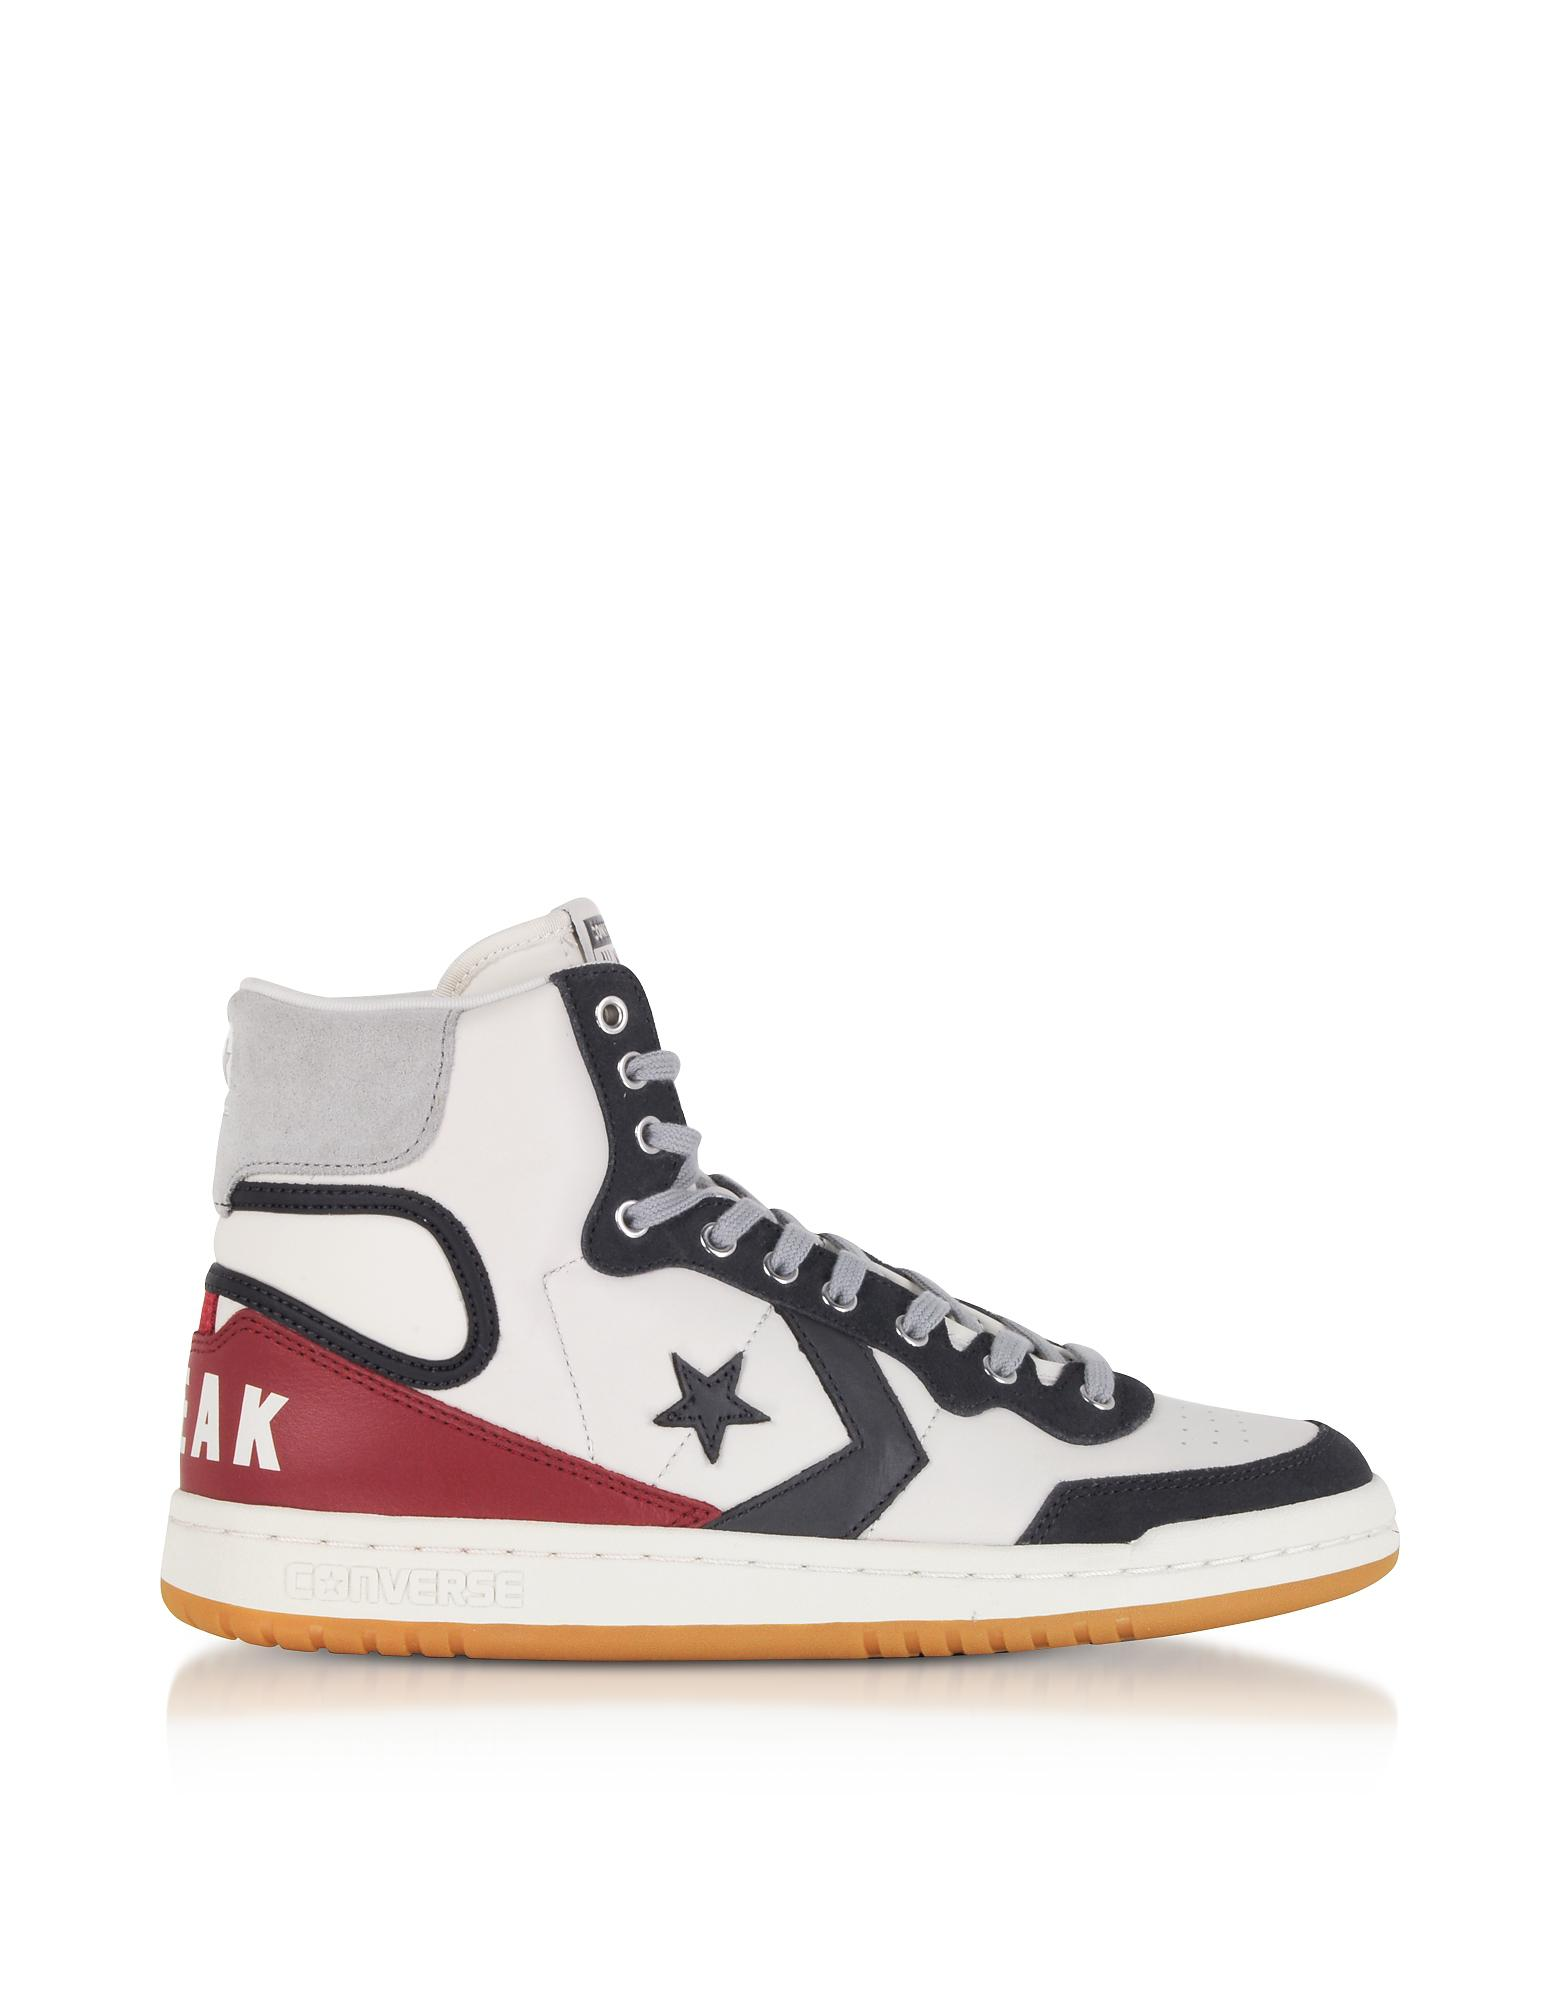 14e6a1f60f7 Lyst - Converse Fastbreak Hi Light Gray And Storm Wind Leather High ...